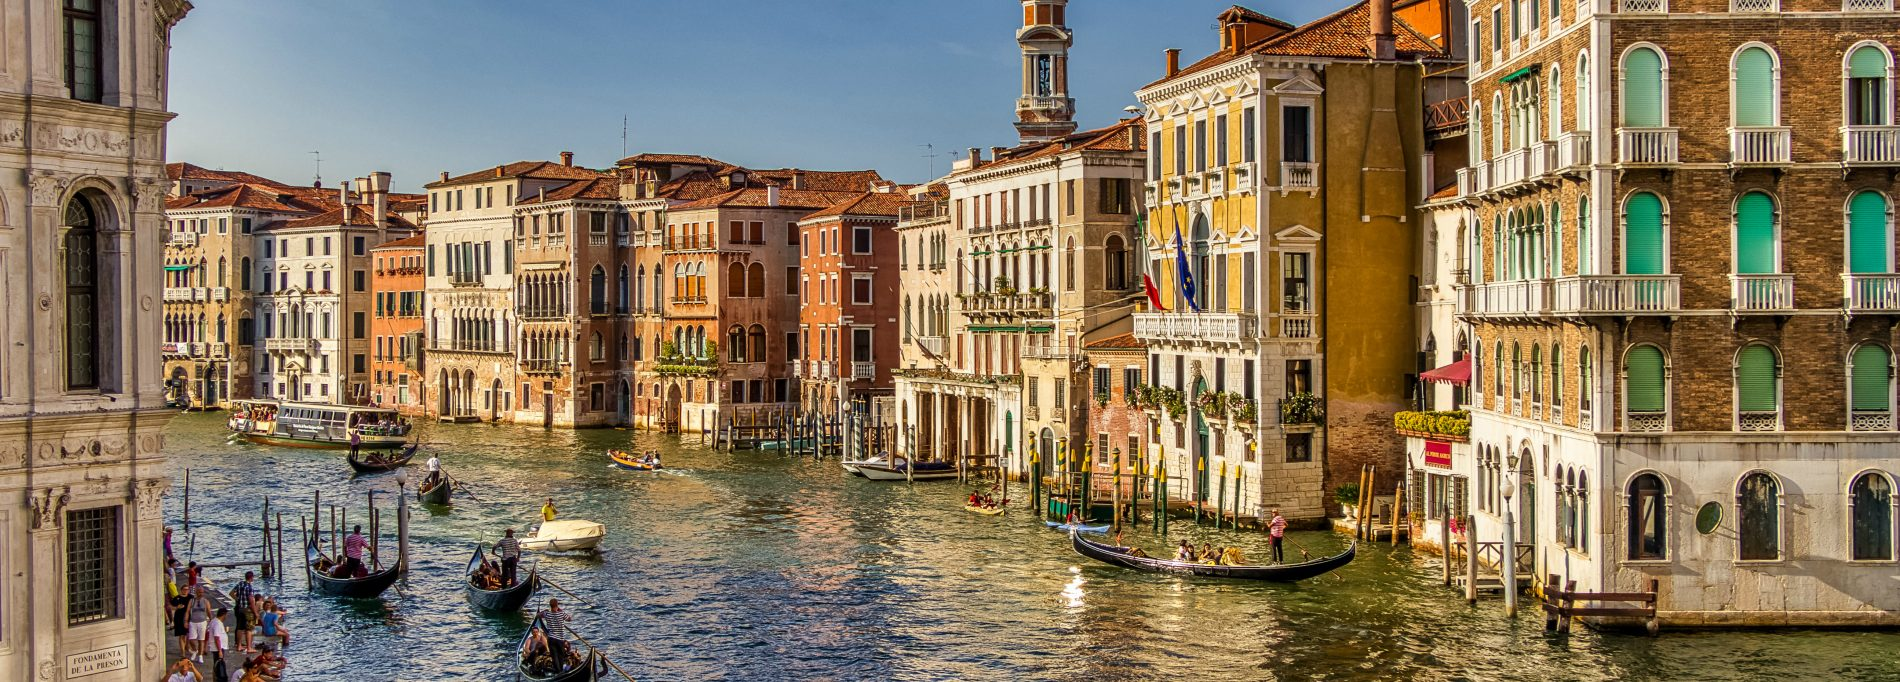 Free Things to Do in Venice on Grand Canal